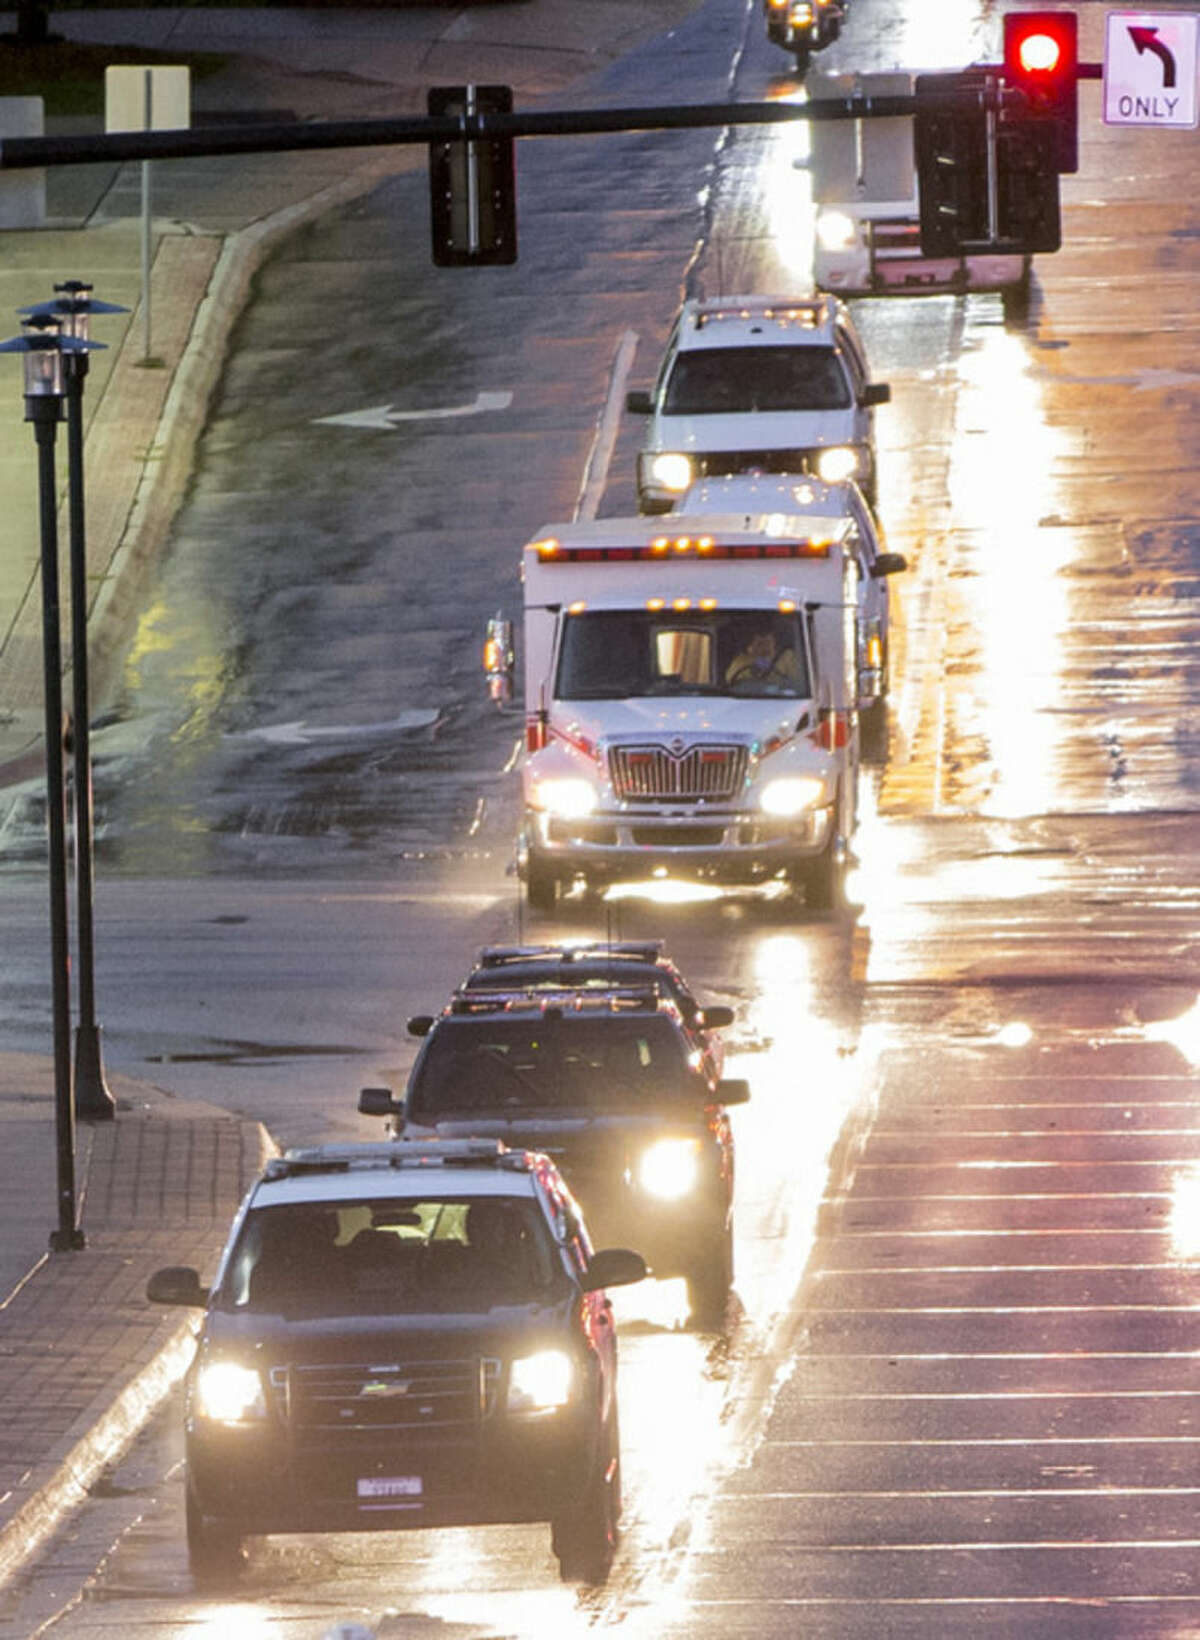 The ambulance transporting Dr. Rick Sacra, 51, who was infected with Ebola while serving as an obstetrician in Liberia, arrives escorted by police vehicles to the Nebraska Medical Center in Omaha, Neb., Friday, Sept. 5, 2014. Sacra, who served with North Carolina-based charity SIM, is the third American aid worker infected by the Ebola virus. He will begin treatment in the hospital's 10-bed special isolation unit, the largest of four such units in the U.S. (AP Photo/Nati Harnik)